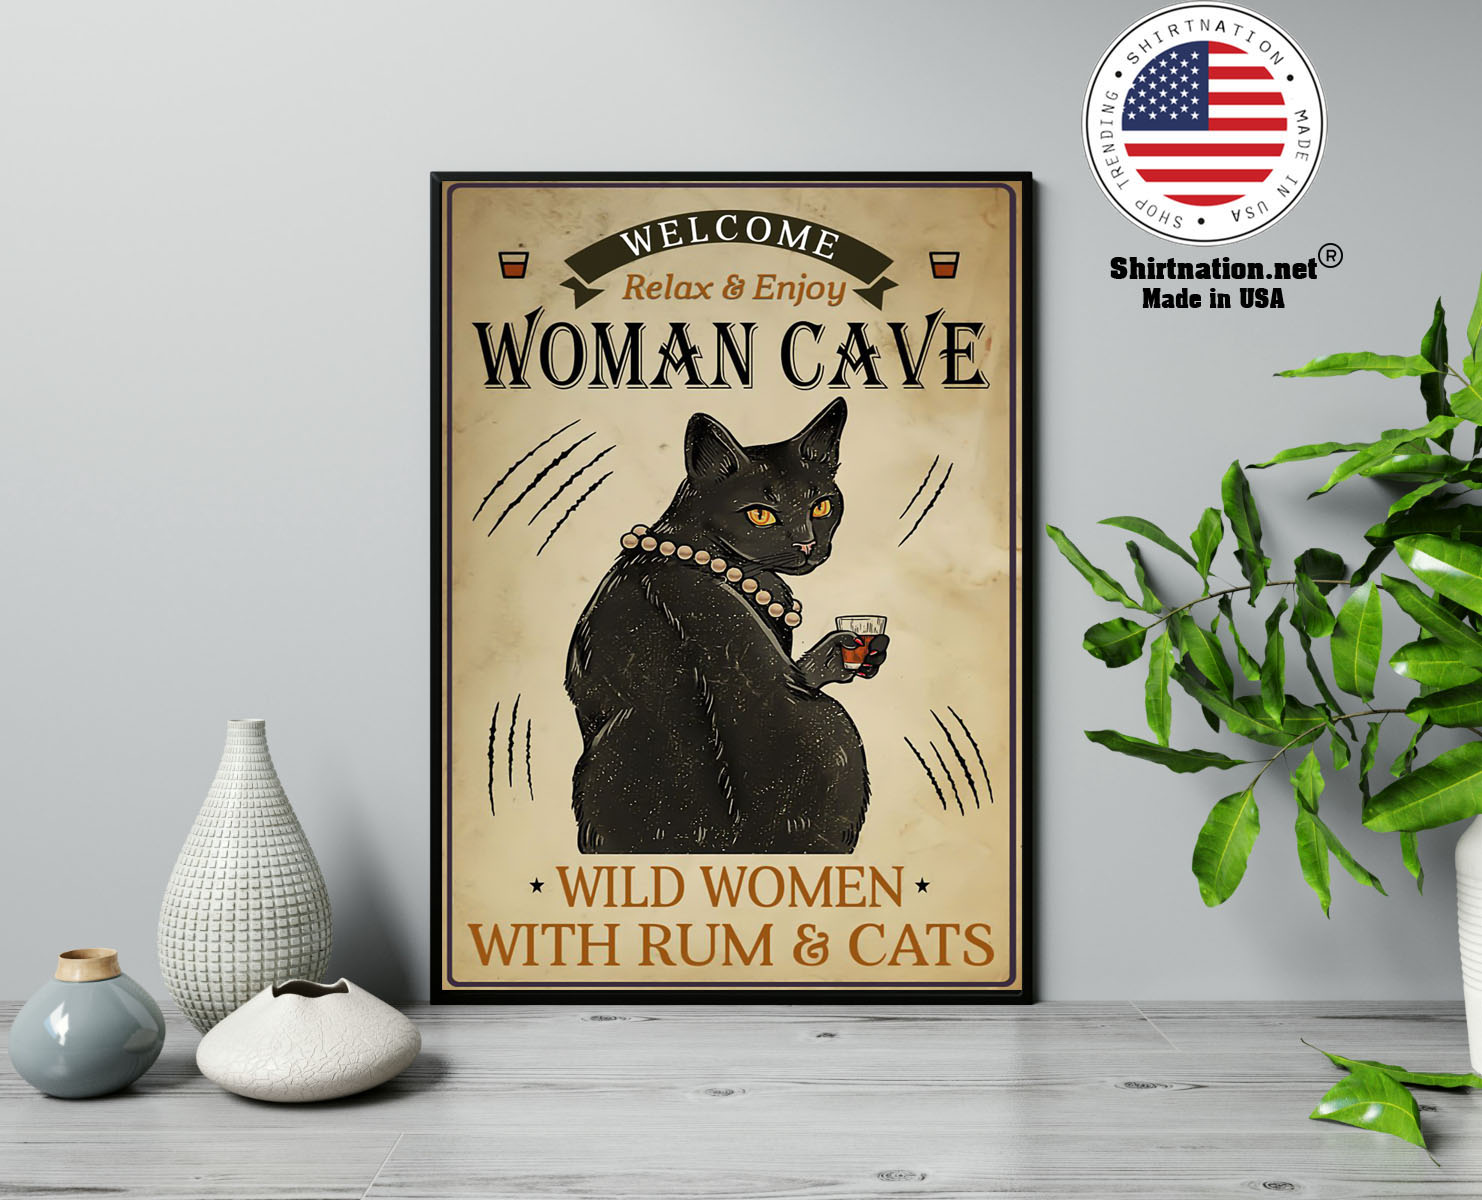 Welcome relax enjoy woman cave will women with rum and cats poster 13